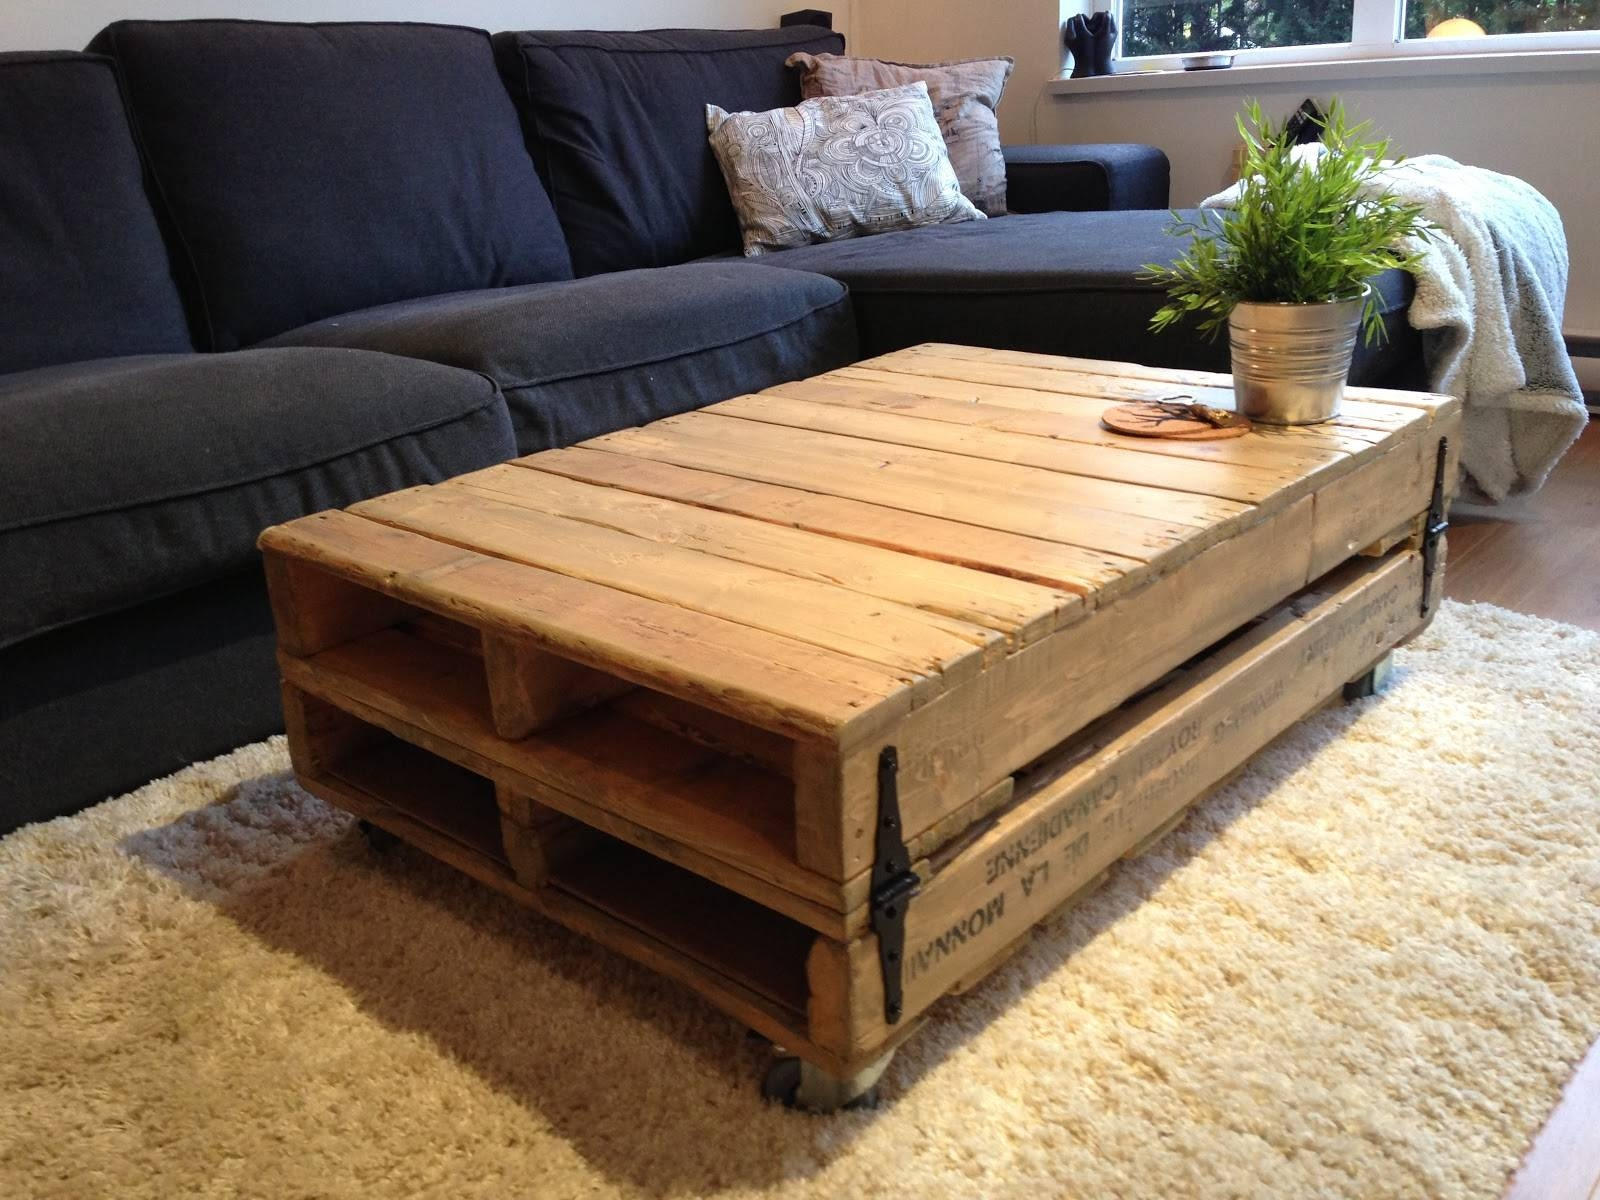 Living Room Tables Living Room Design And Living Room Ideas with Cheap Oak Coffee Tables (Image 25 of 30)